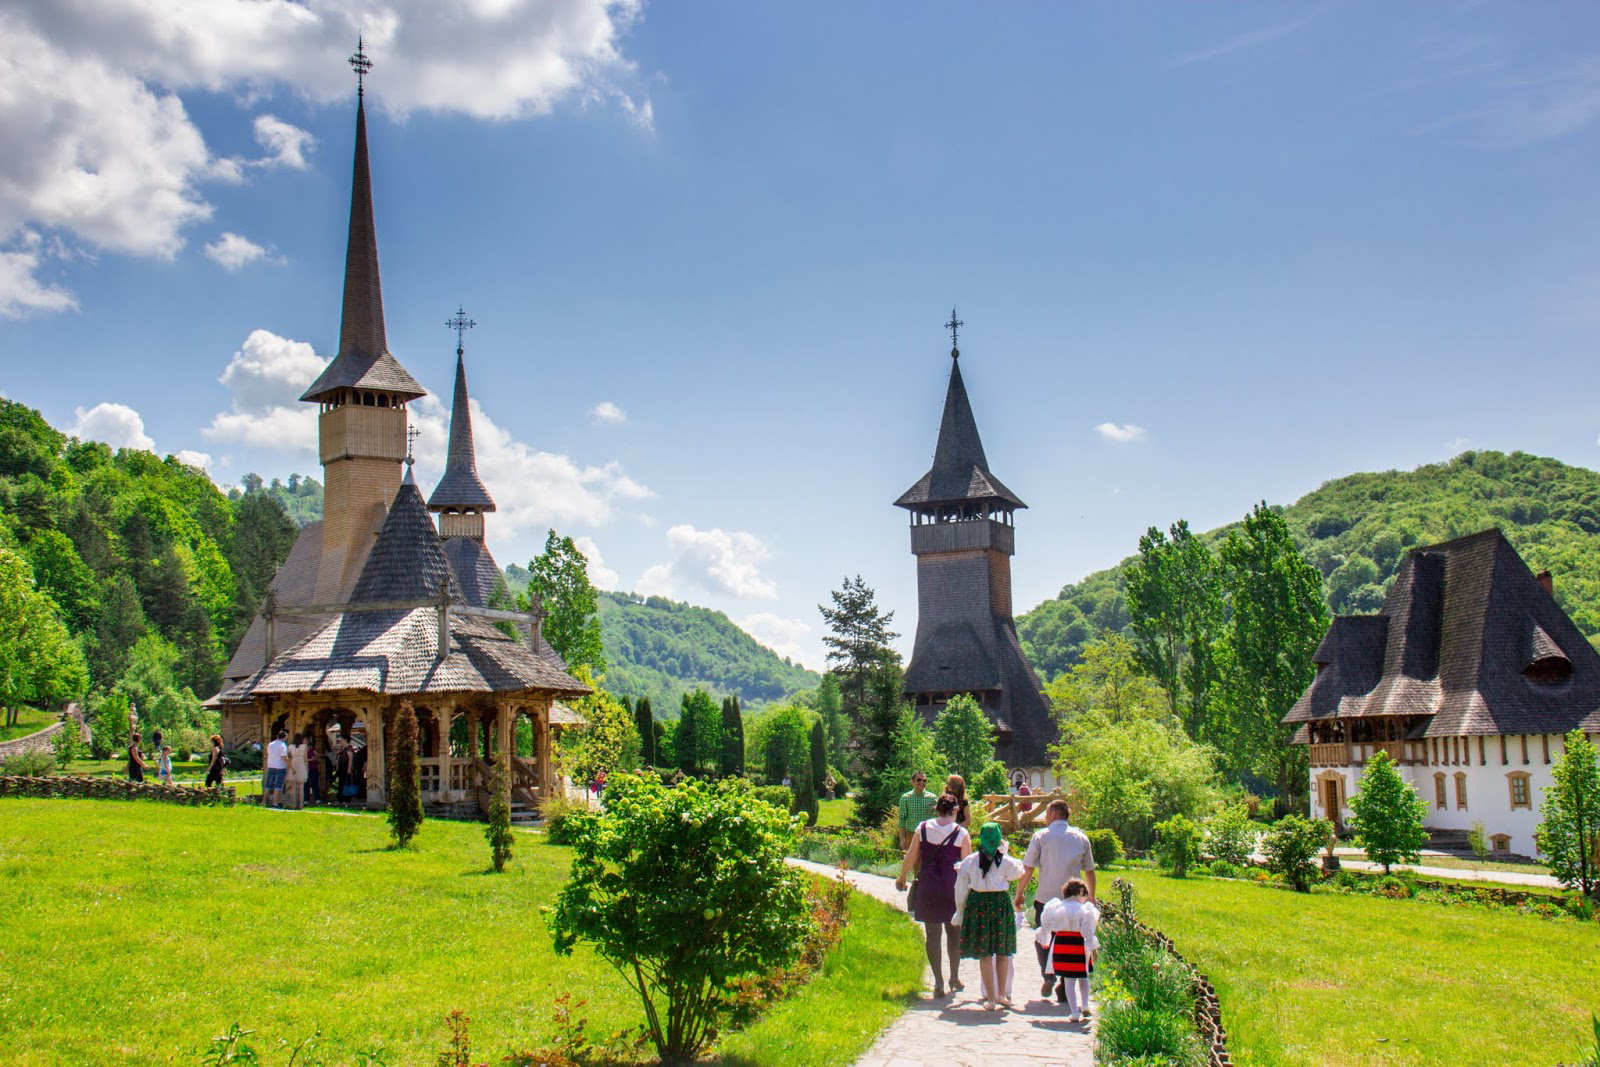 Maramures - a region with still living traditions